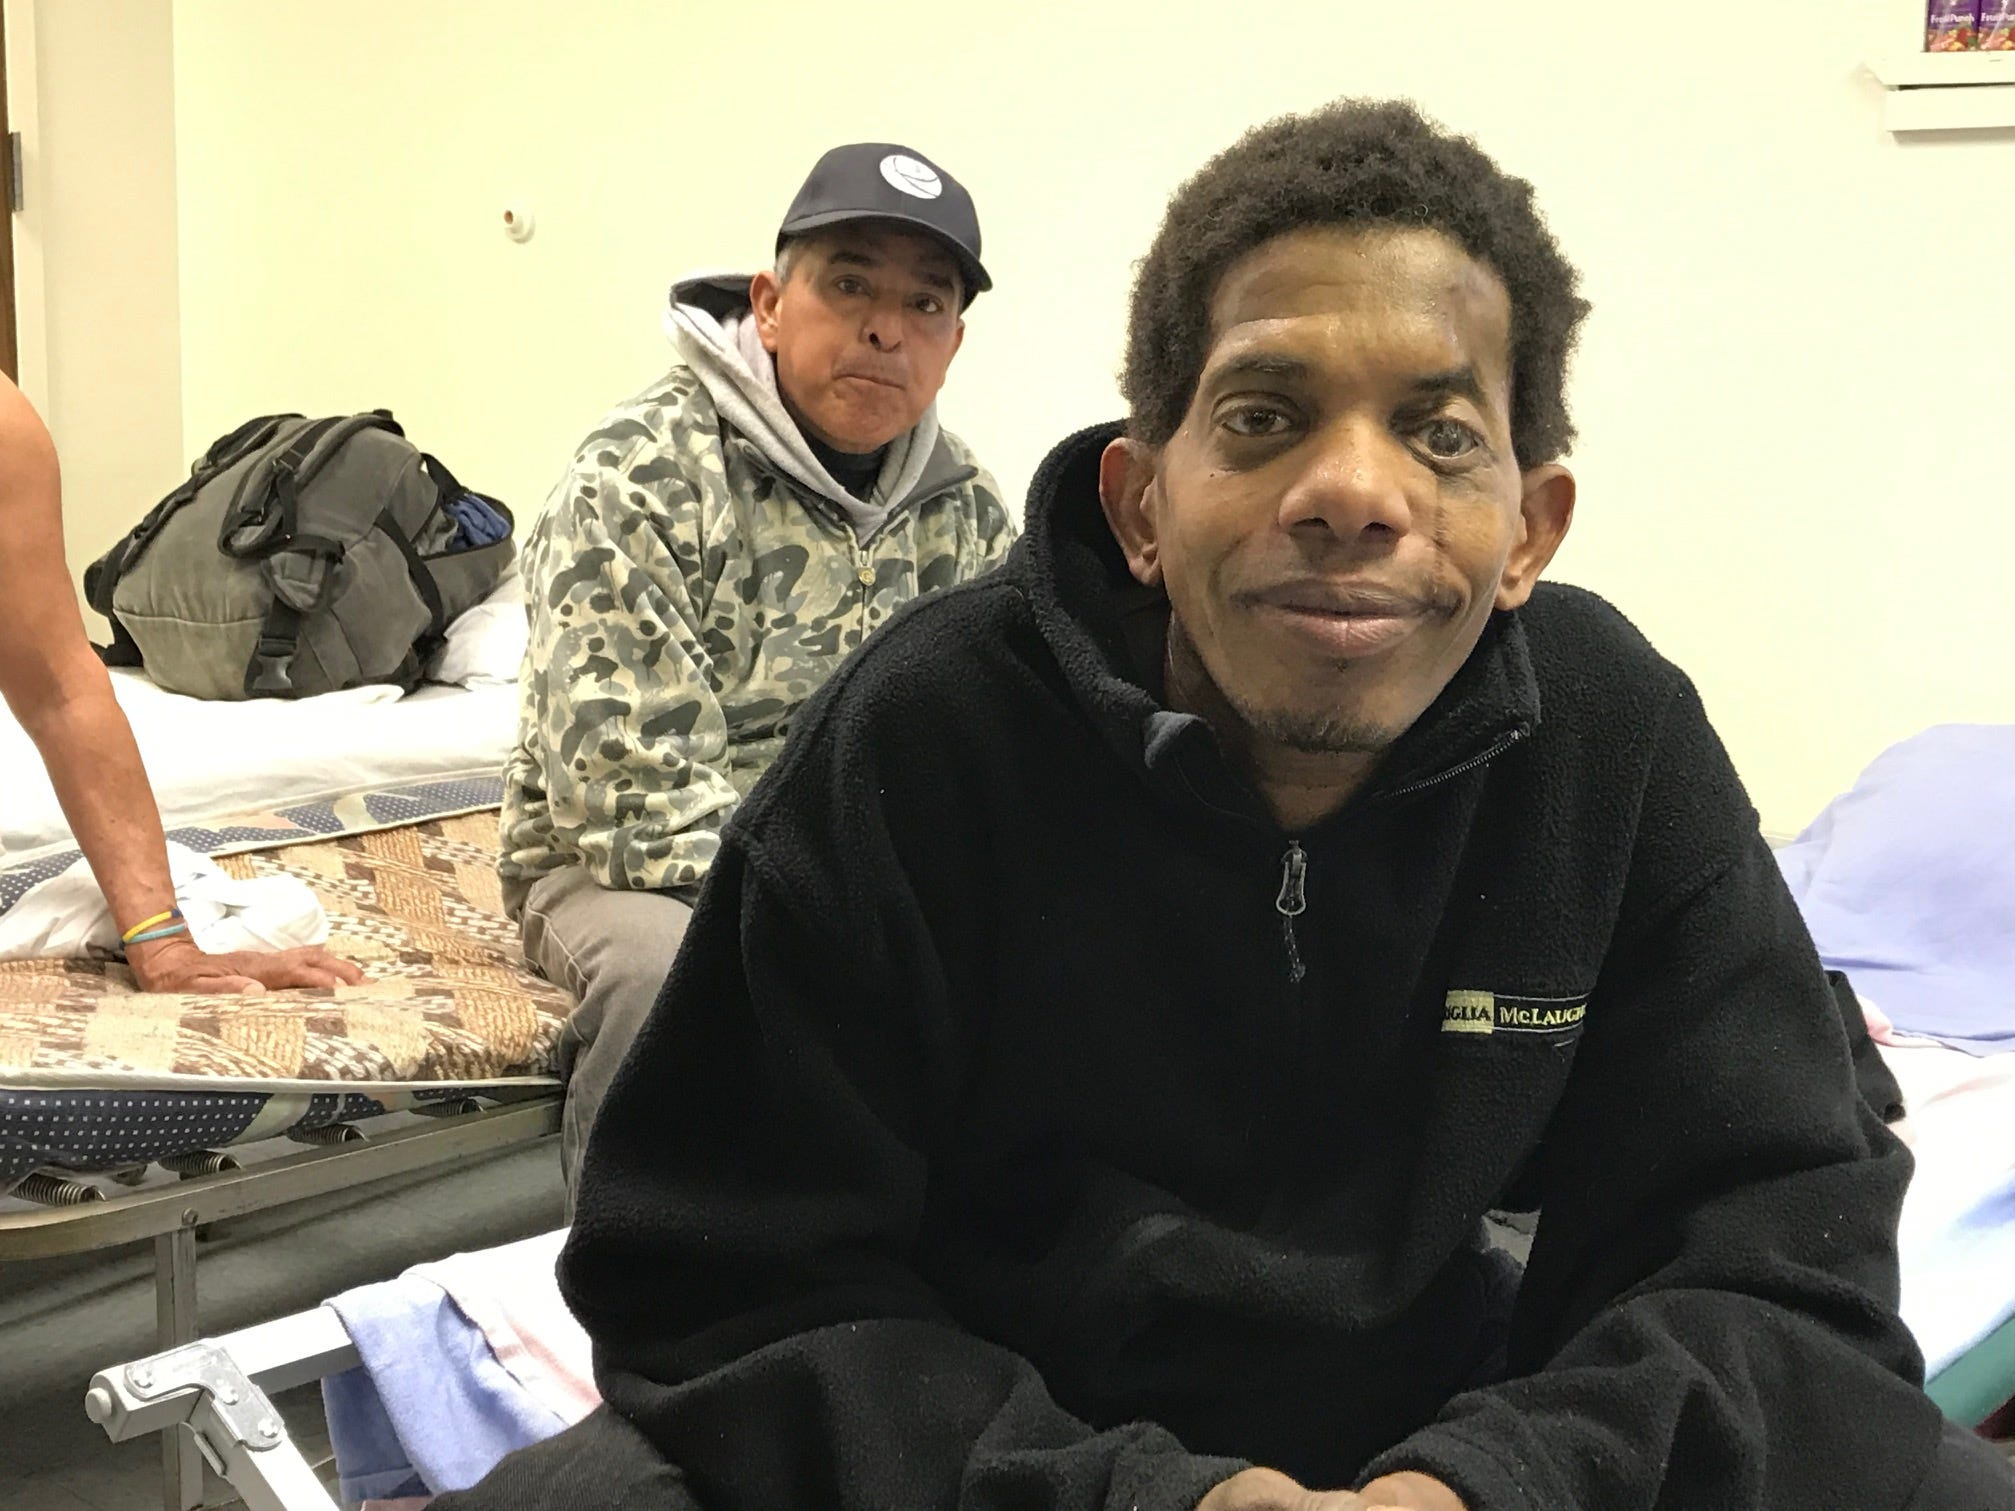 Richard Laywood came from Cuba after an auto accident that messed up his left eye four years ago. He's having a hard time getting companies to hire him.